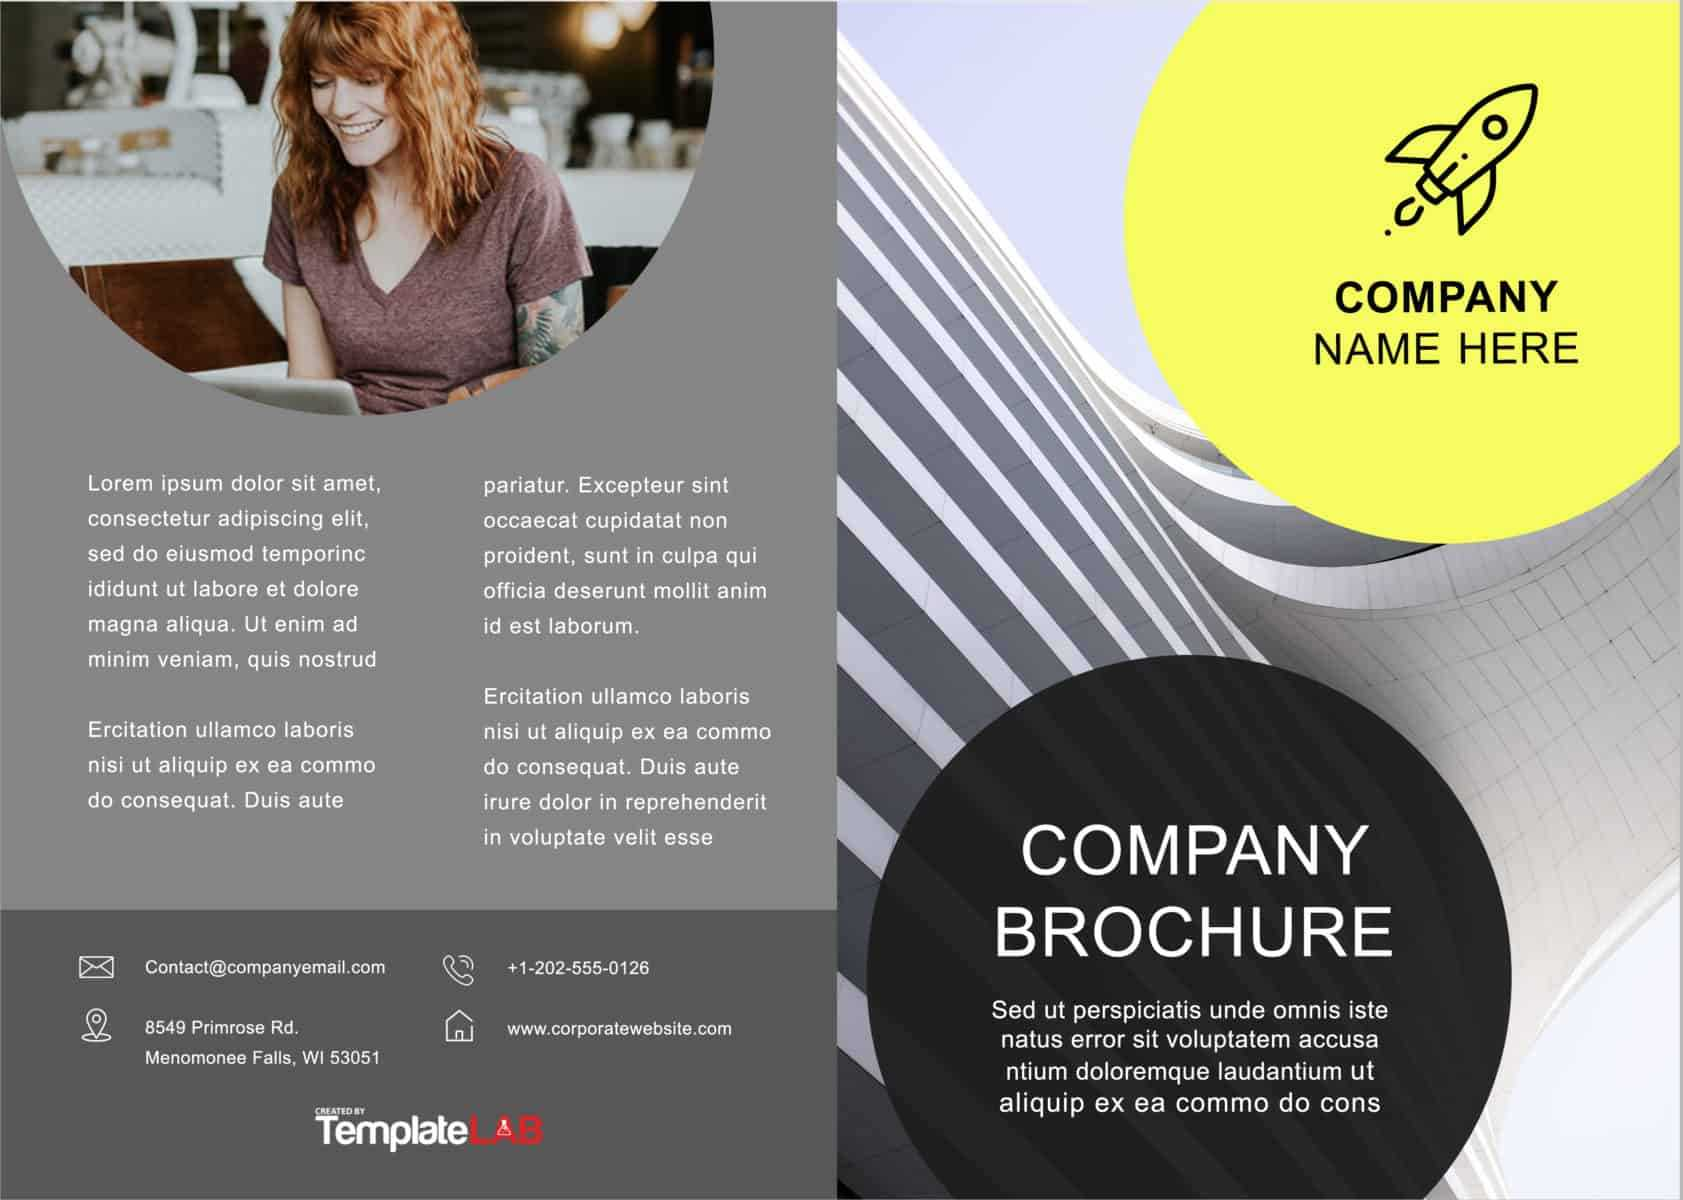 33 Free Brochure Templates (Word + Pdf) ᐅ Templatelab With Free Brochure Templates For Word 2010